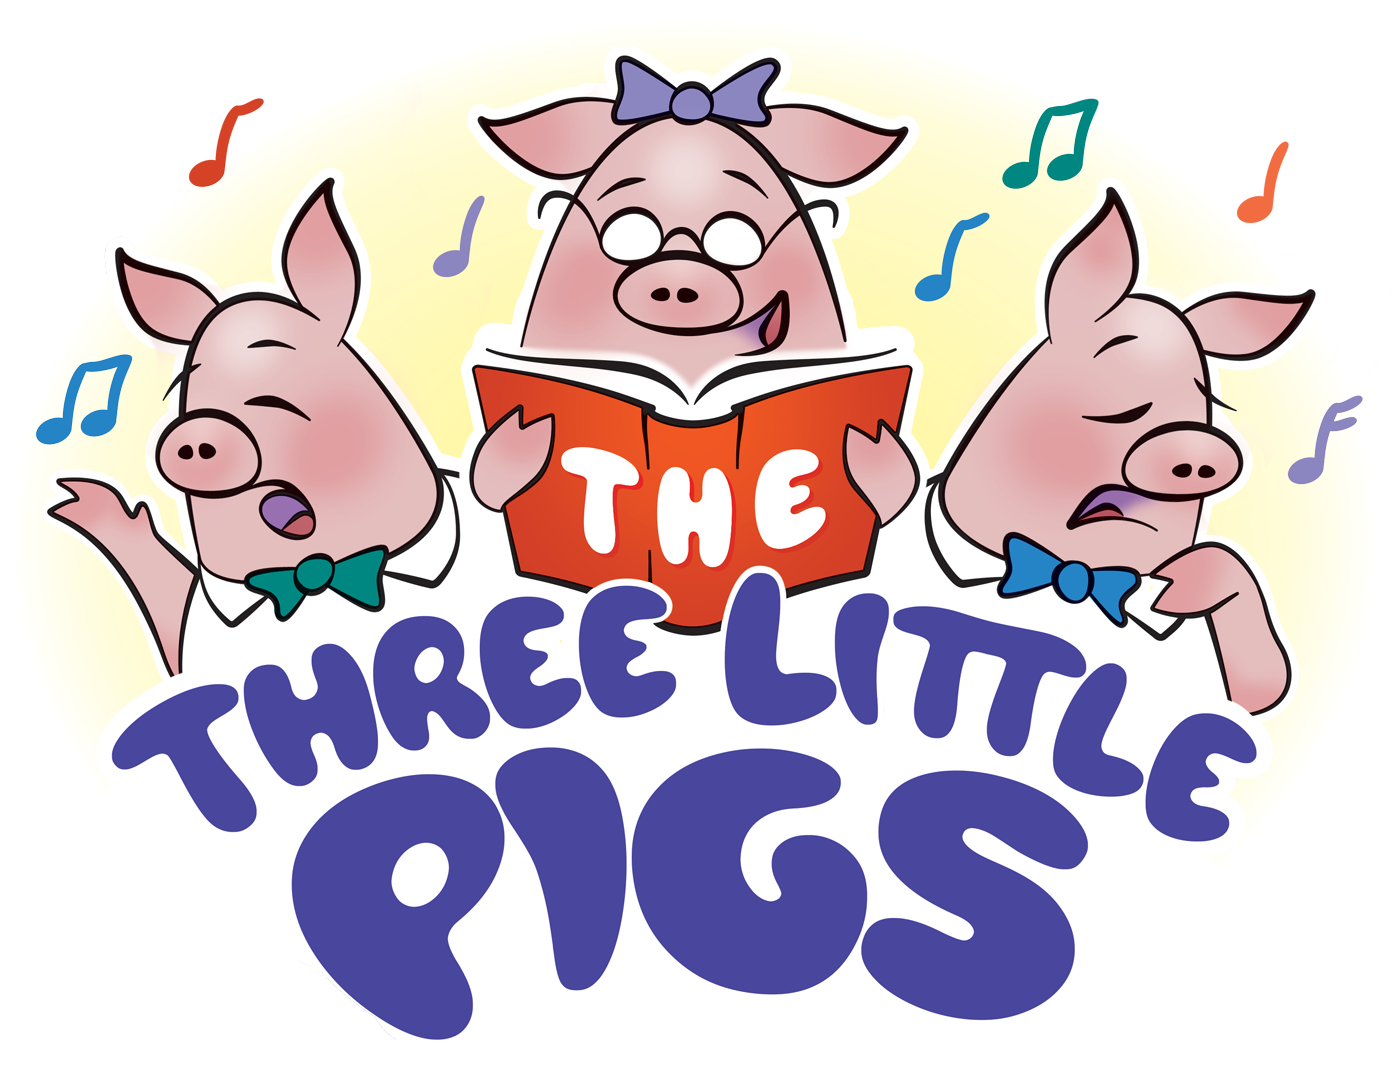 Wolves clipart three little pig. Wildwood park for the